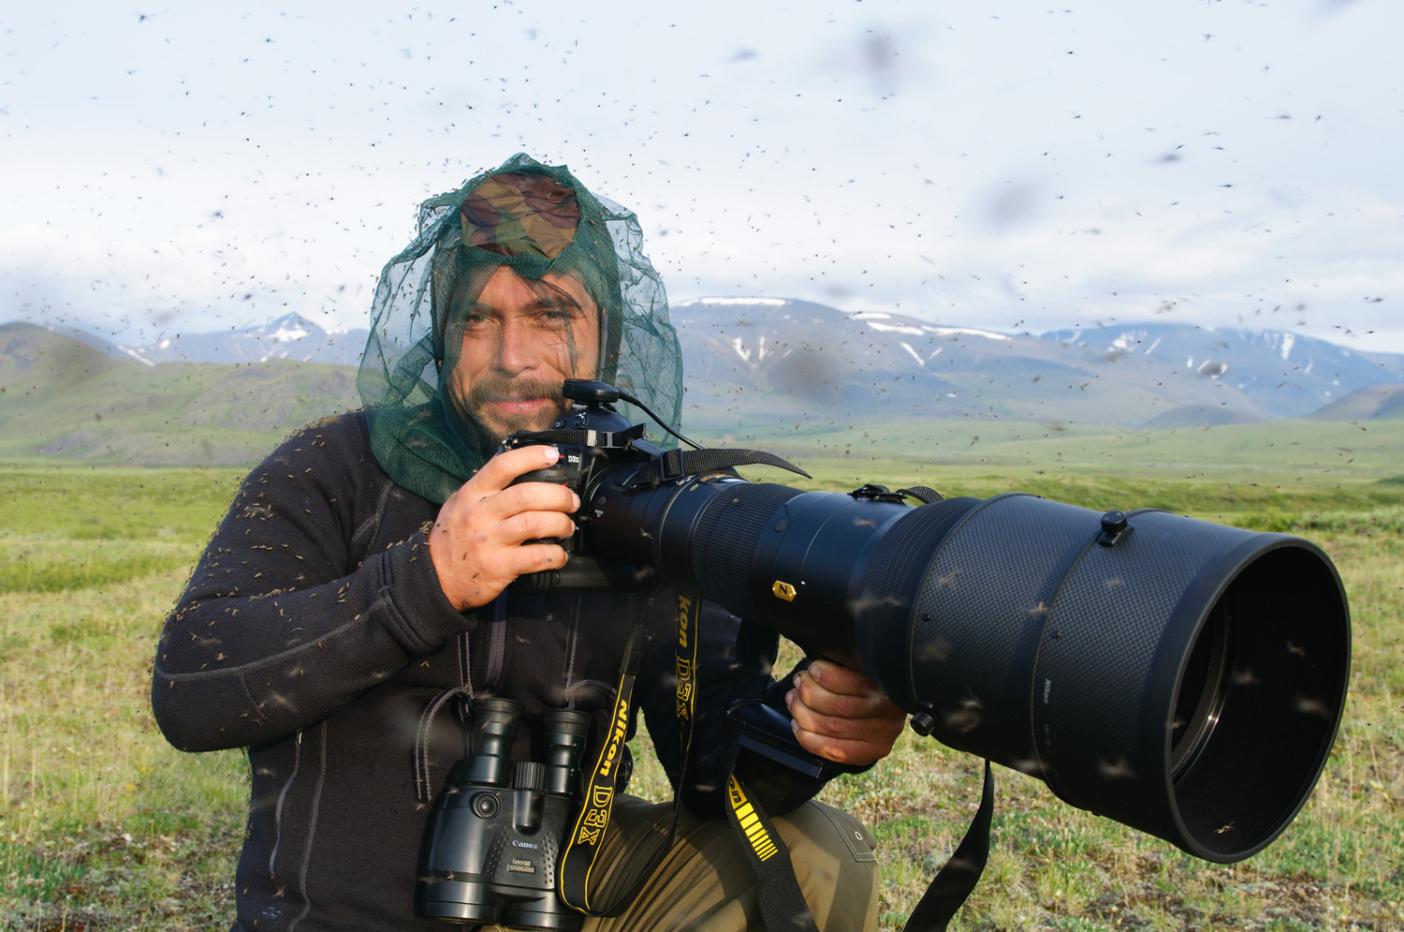 Florian Schulz is the youngest founding member of the International League of Conservation Photographers. His work has appeared in National Geographic and the New York Times, and has been exhibited by the Smithsonian Museum of National History and the American Museum of Natural History. In 2012, he won the Sierra Club's Ansel Adams Award for Conservation Photography. Photo: Salomon Schulz